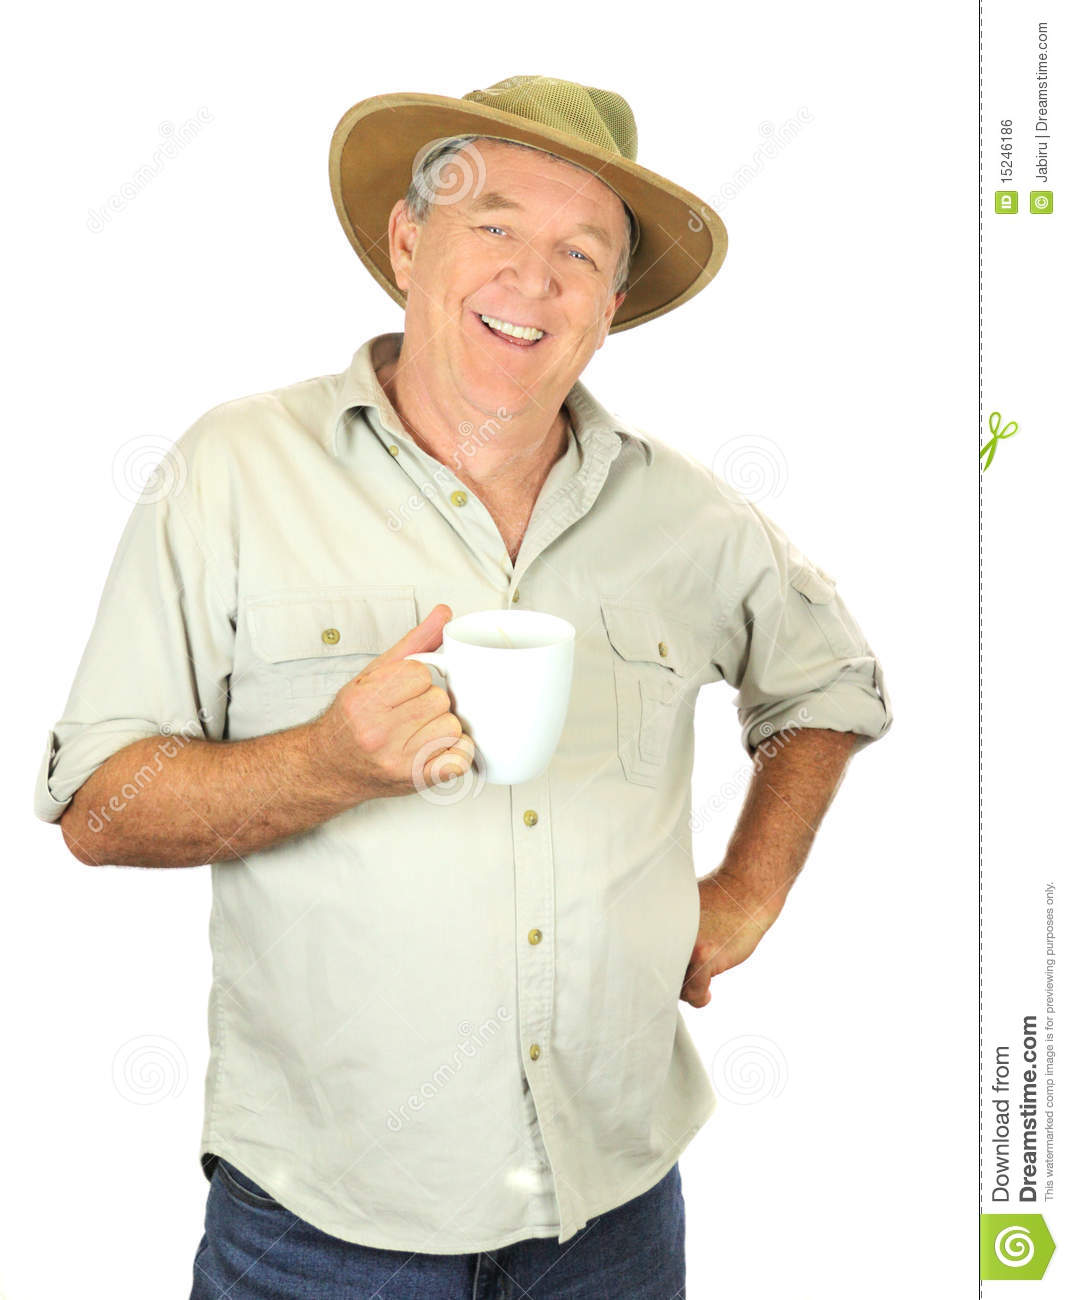 Men Coffee Cups Middle Aged Man Drinking A Cup Of Coffee Royalty Free